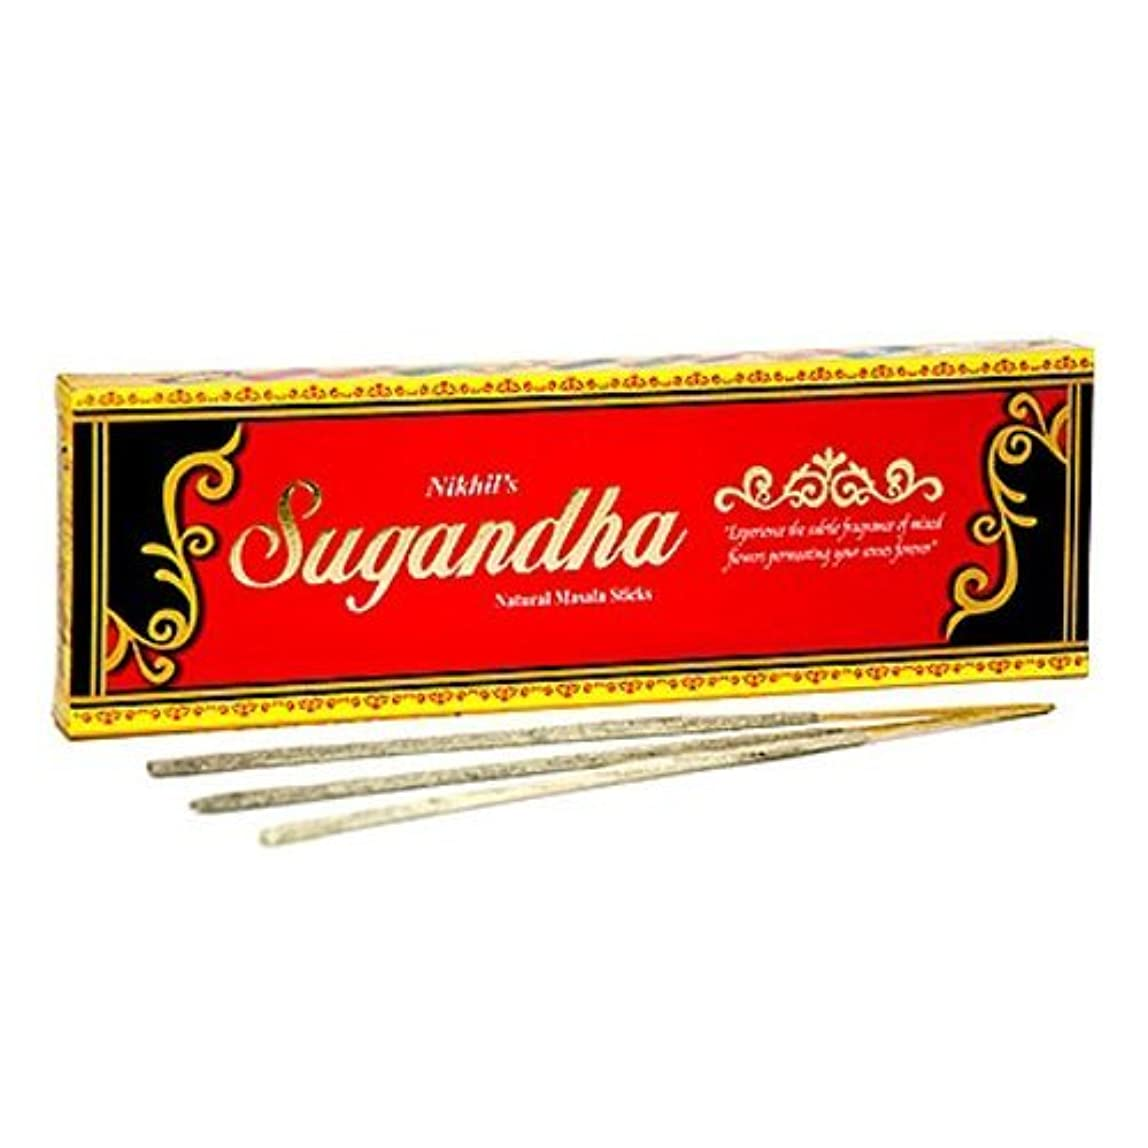 必要症状褐色Nikhil Sugandha Natural Incense - 2 Packs, 50 Grammes per Pack